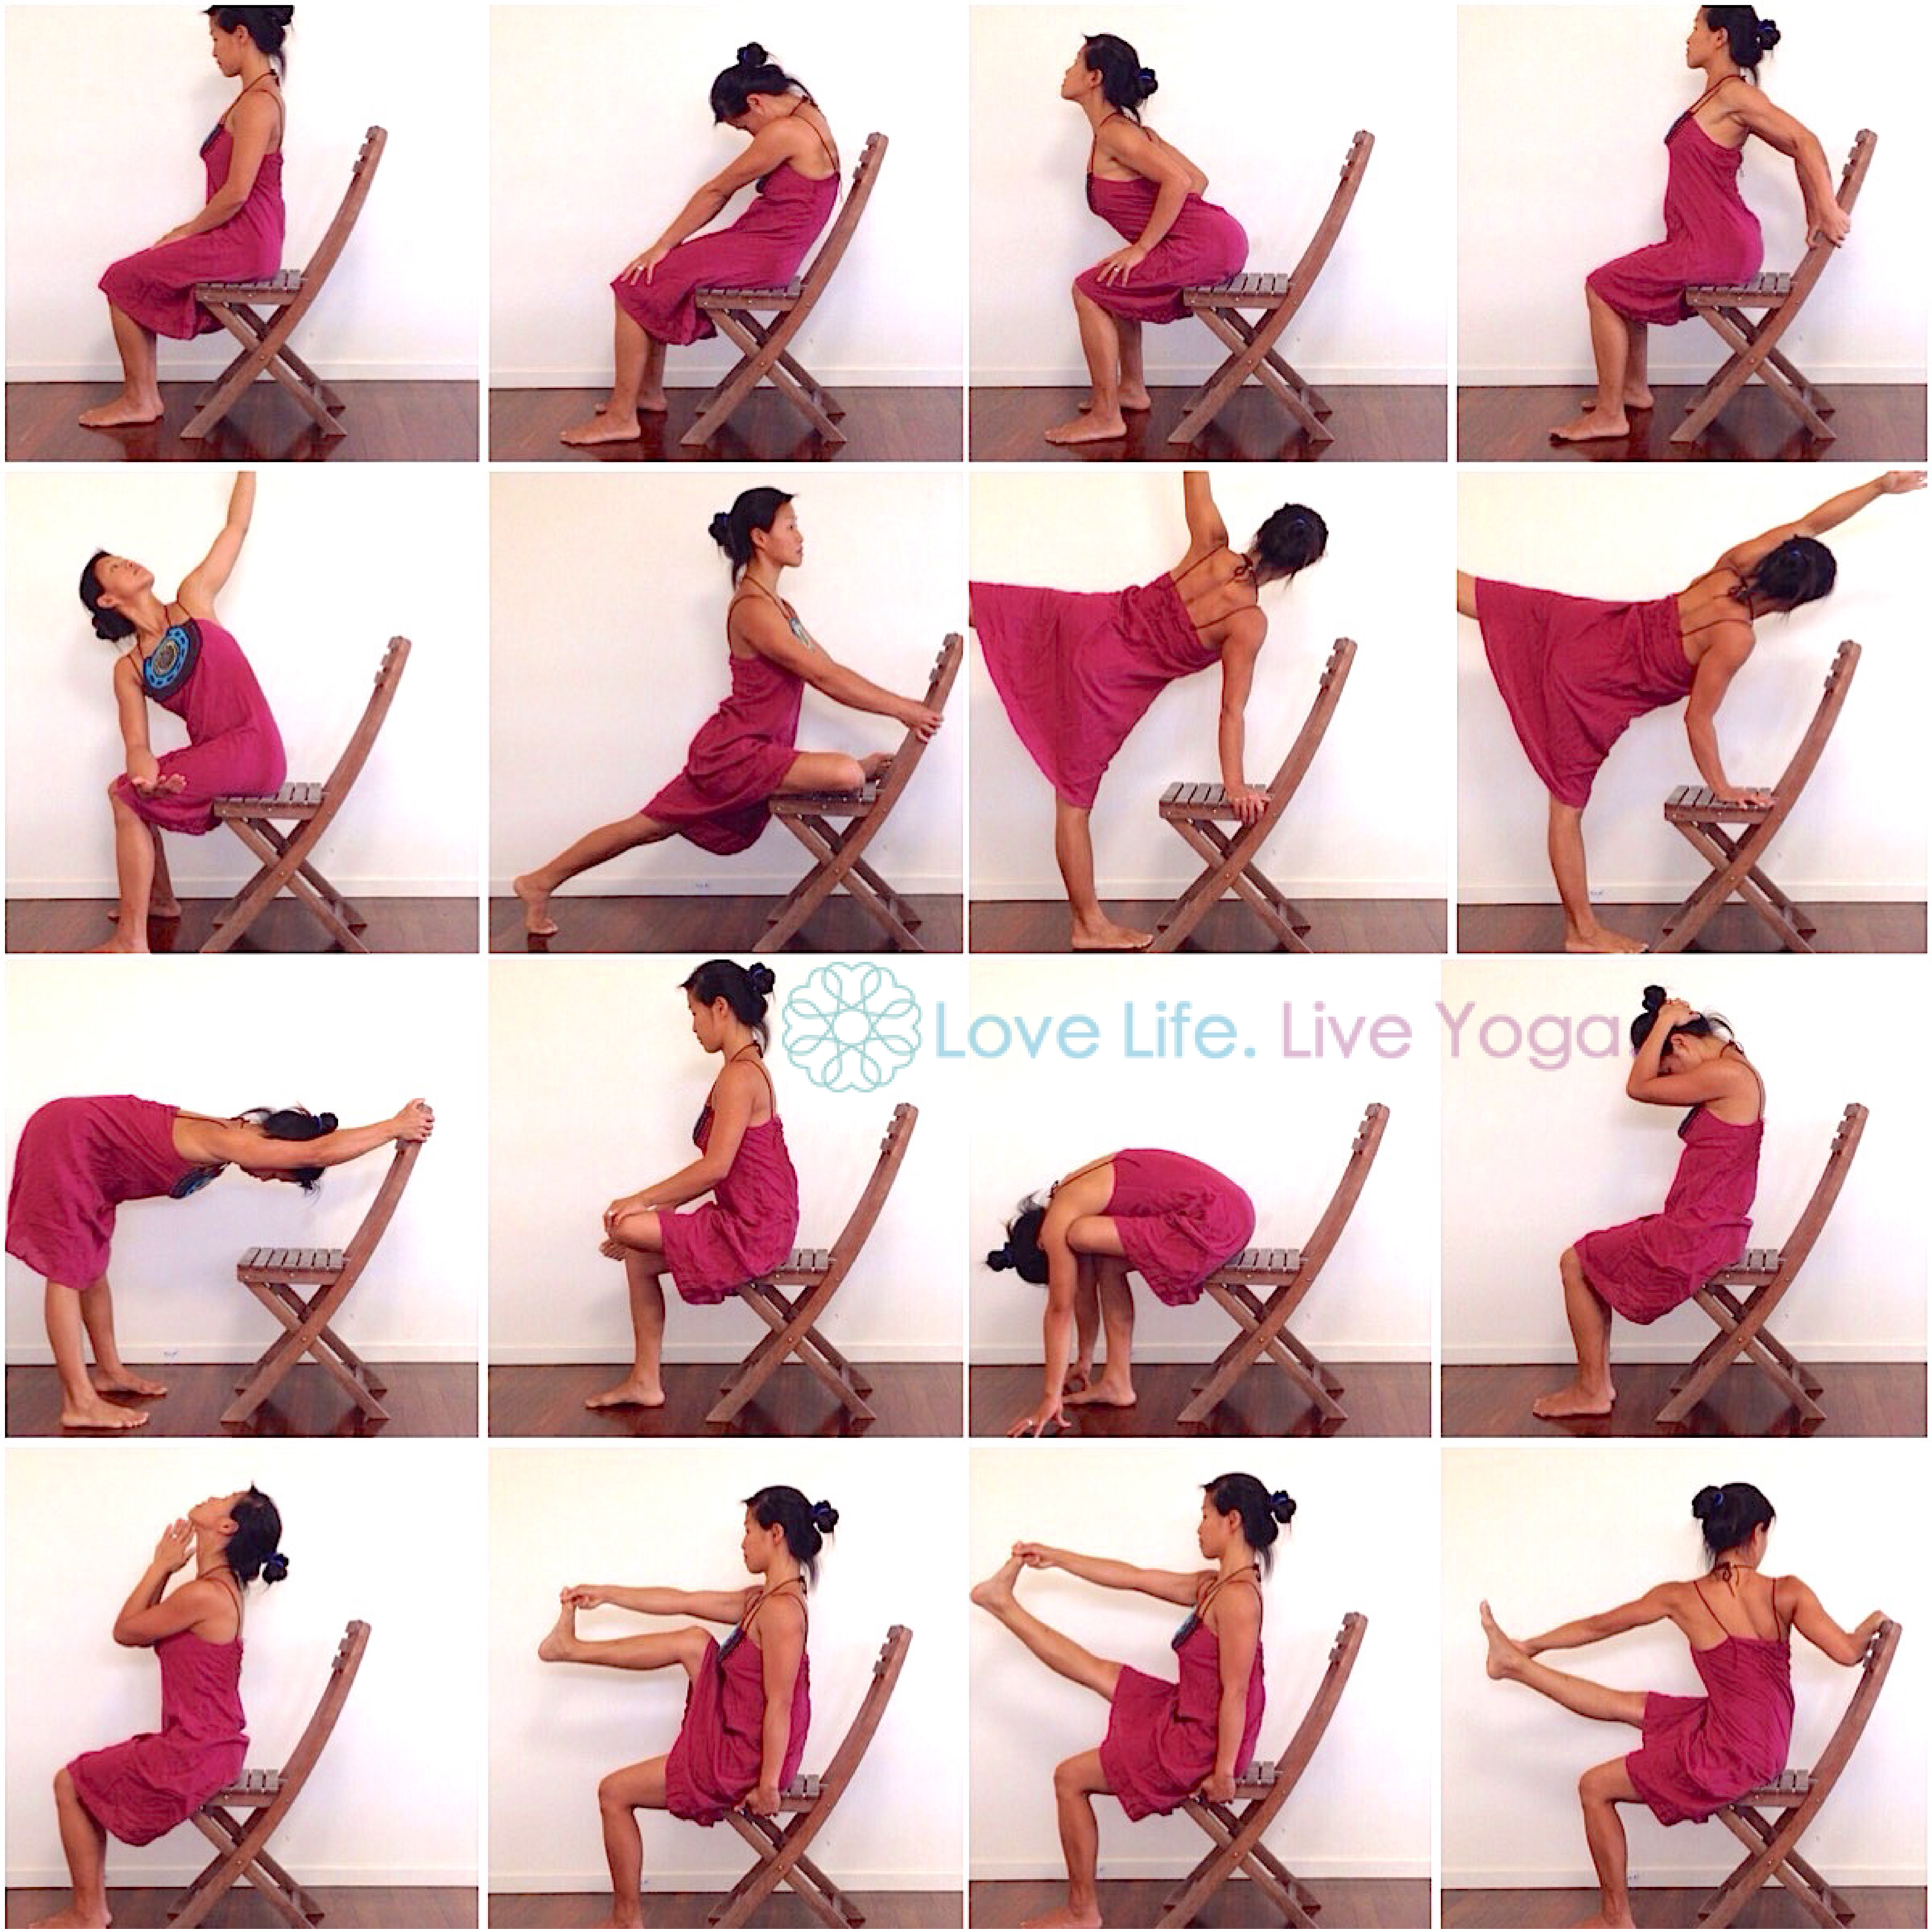 Chair yoga sequence free - Yoga Practice 15 Mins Chair Yoga With Carmen Lee Schneider Love Life Live Yoga Bundaberg Yoga Classes